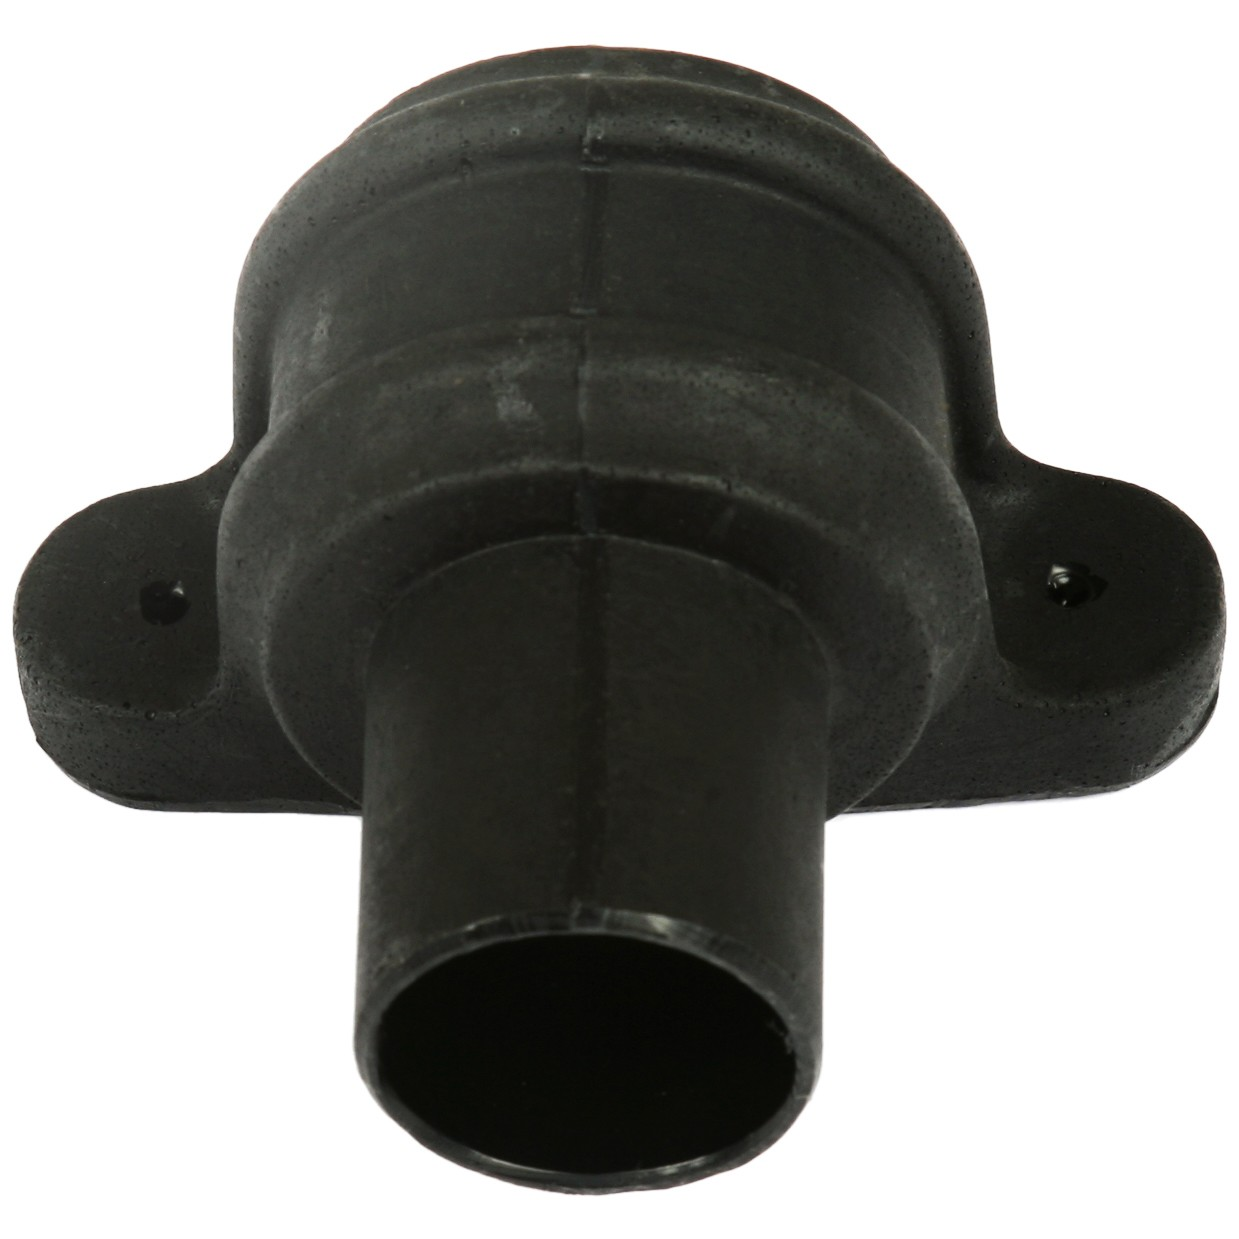 Cascade 68mm Round Cast Iron Style Down Pipe Coupler (With Lugs) - Black